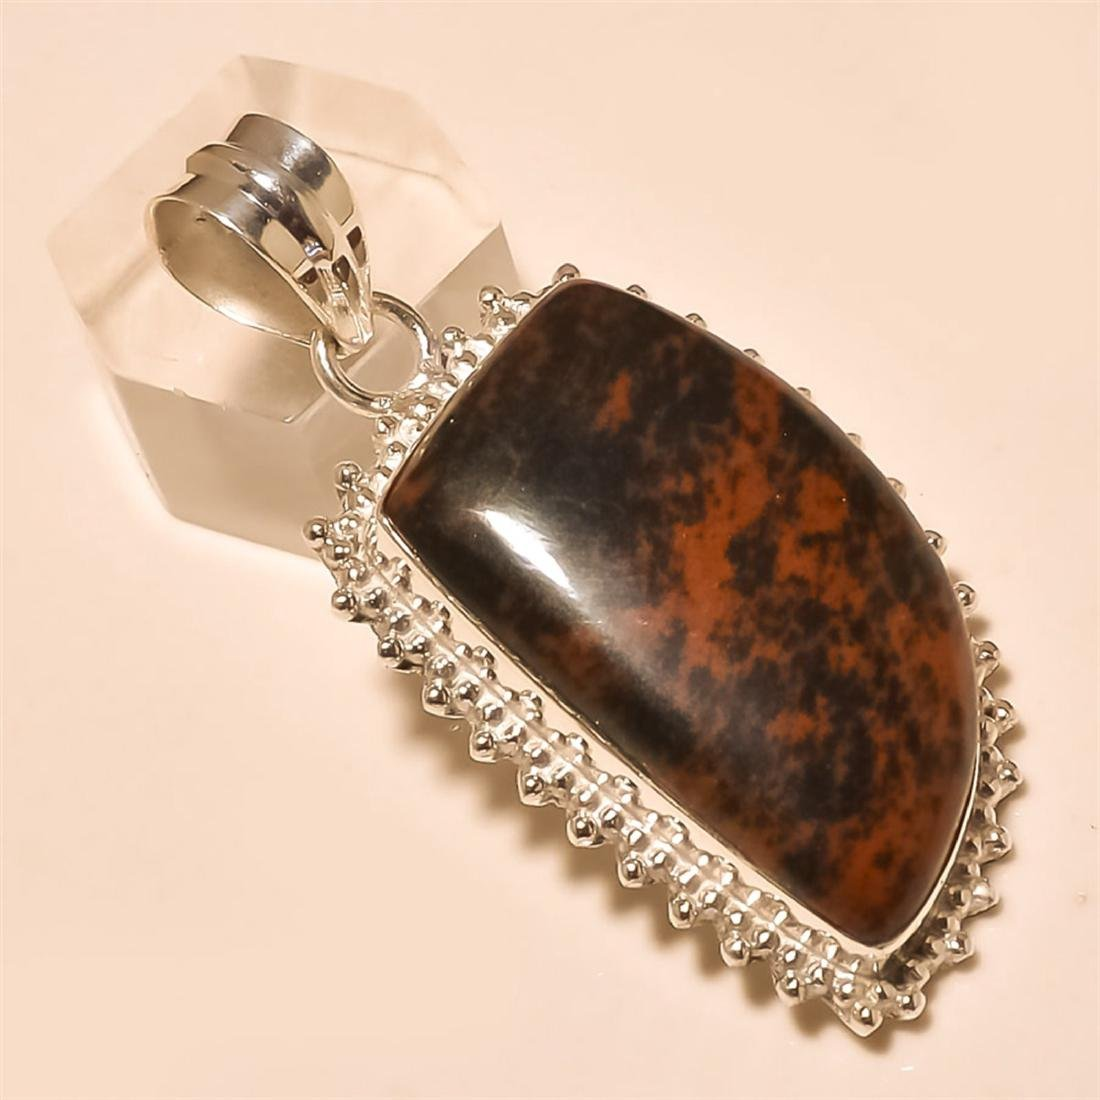 Red Obsidian Pendant Solid Sterling Silver